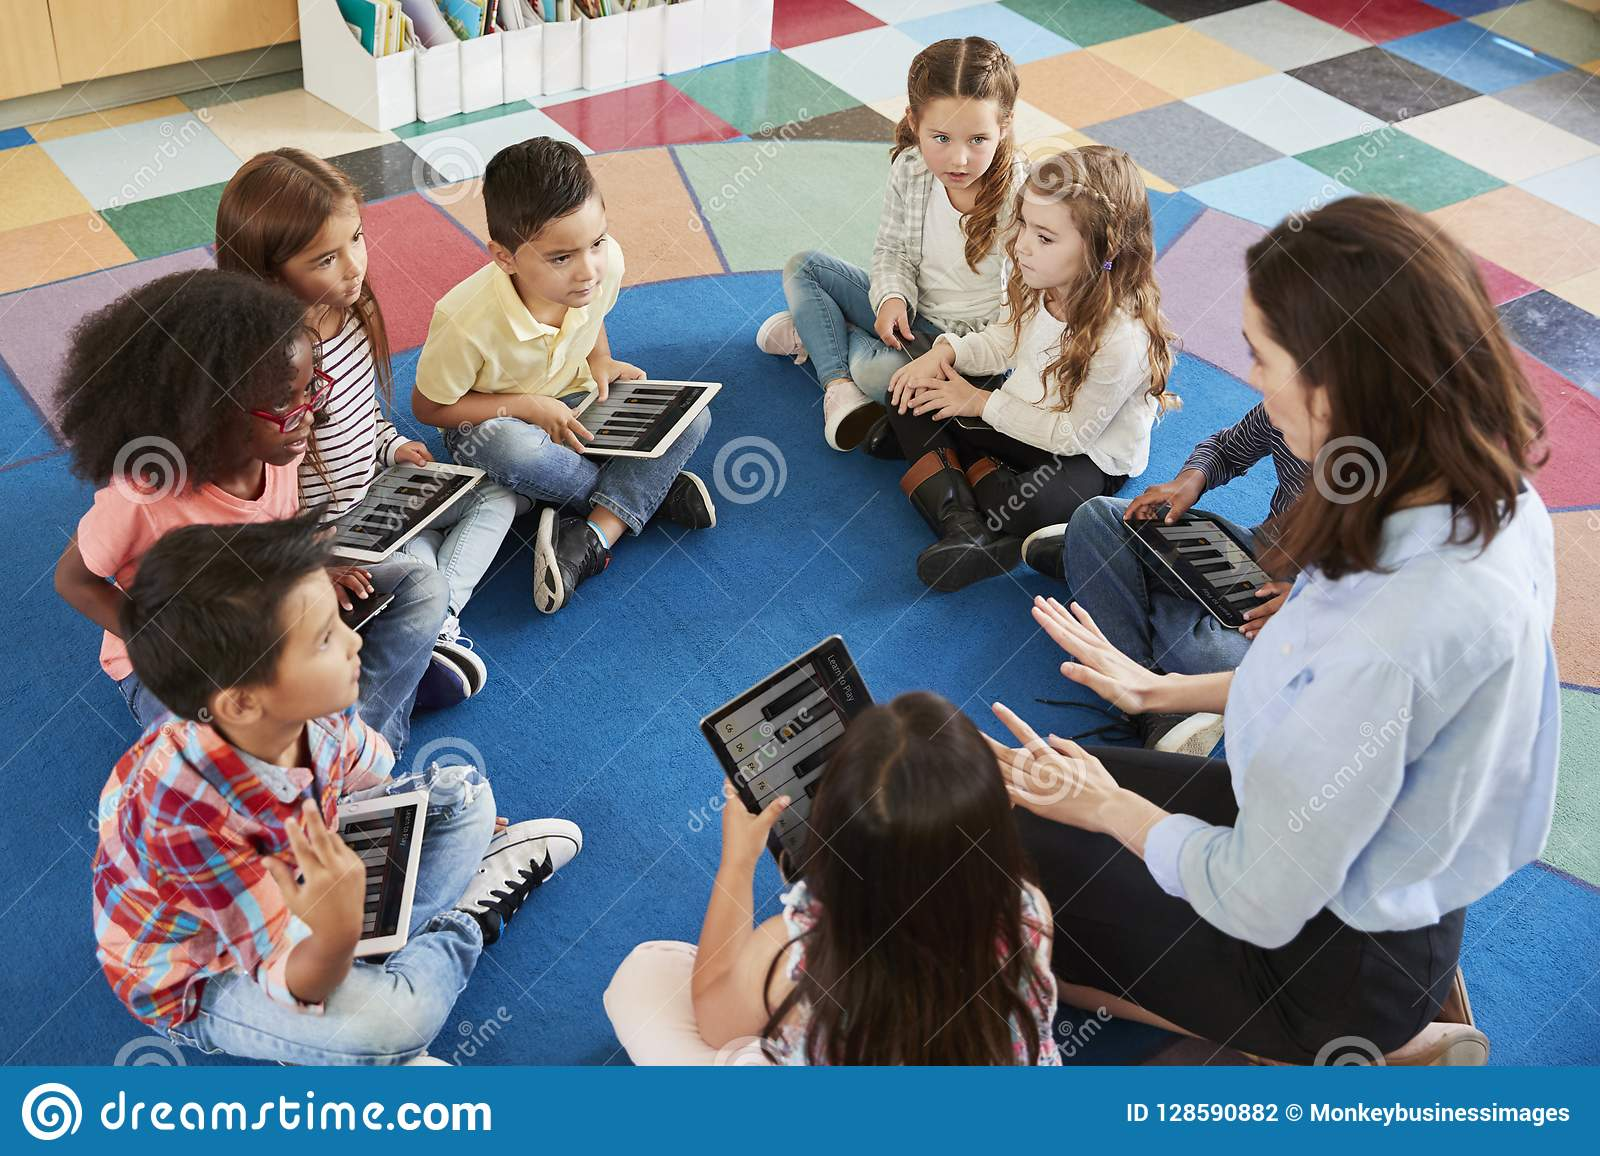 Teacher and kids in an elementary school lesson with tablets